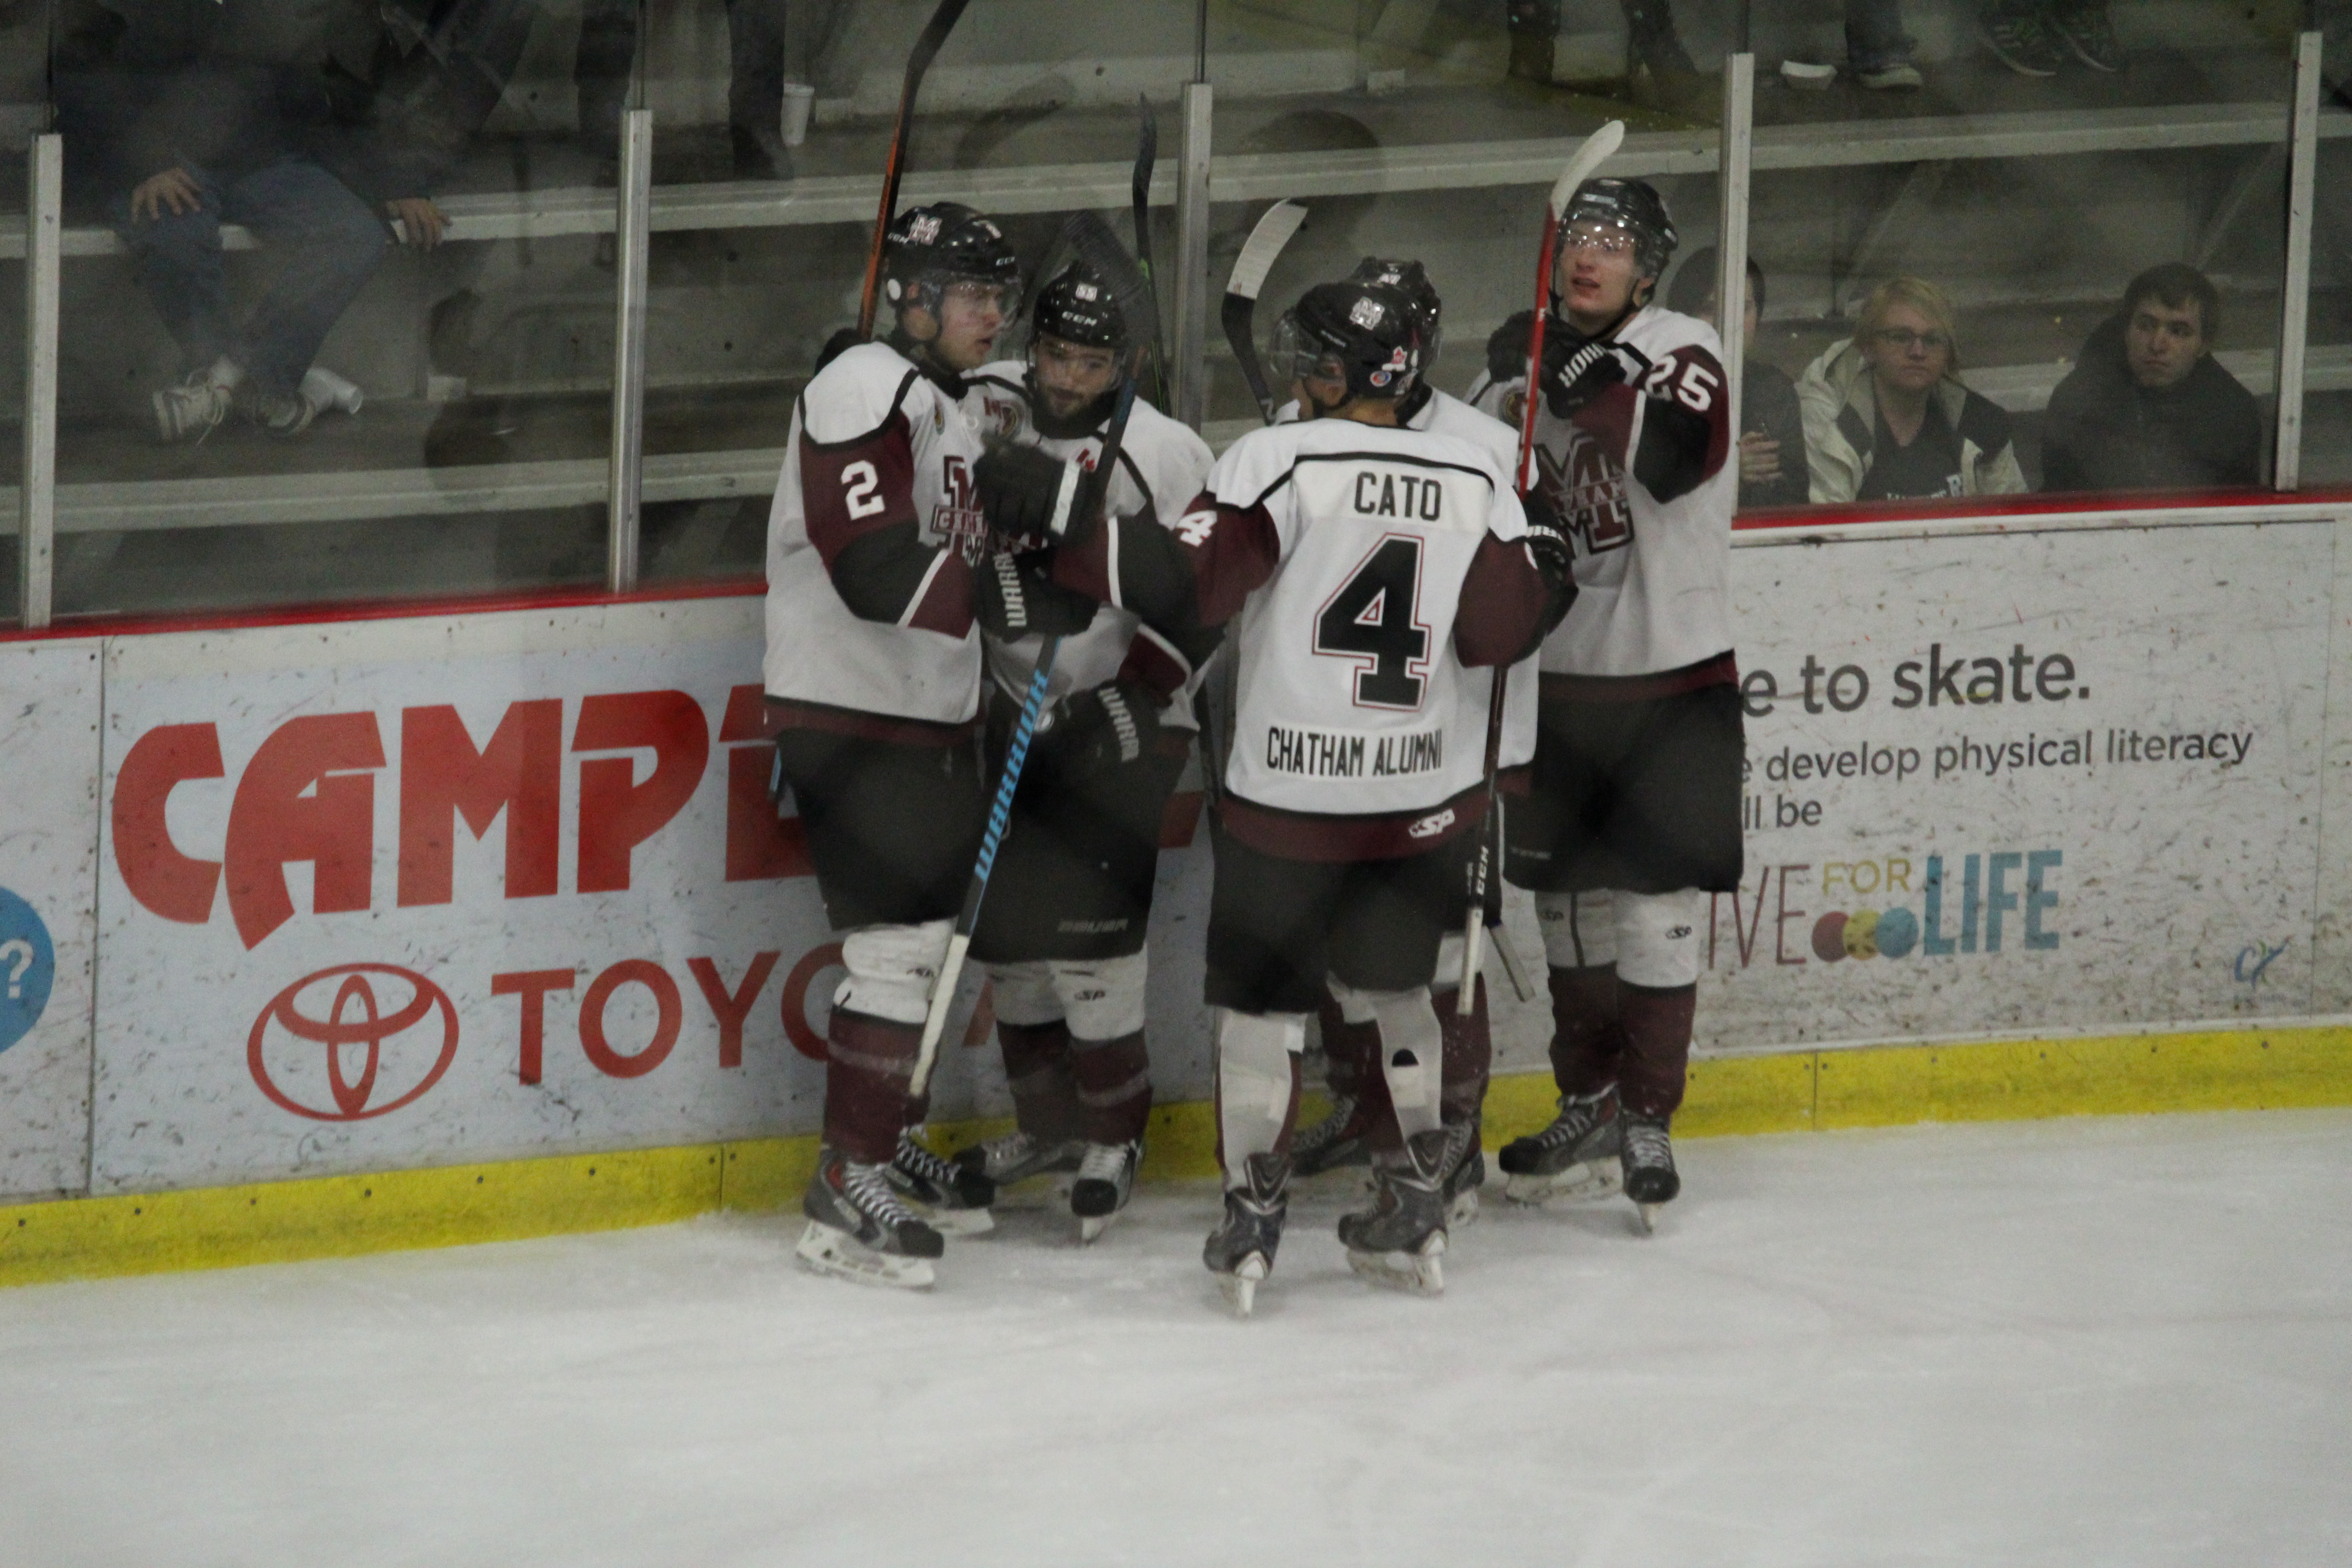 The Chatham Maroons take on the St. Thomas Stars, March 3, 2016. (Photo by Matt Weverink)